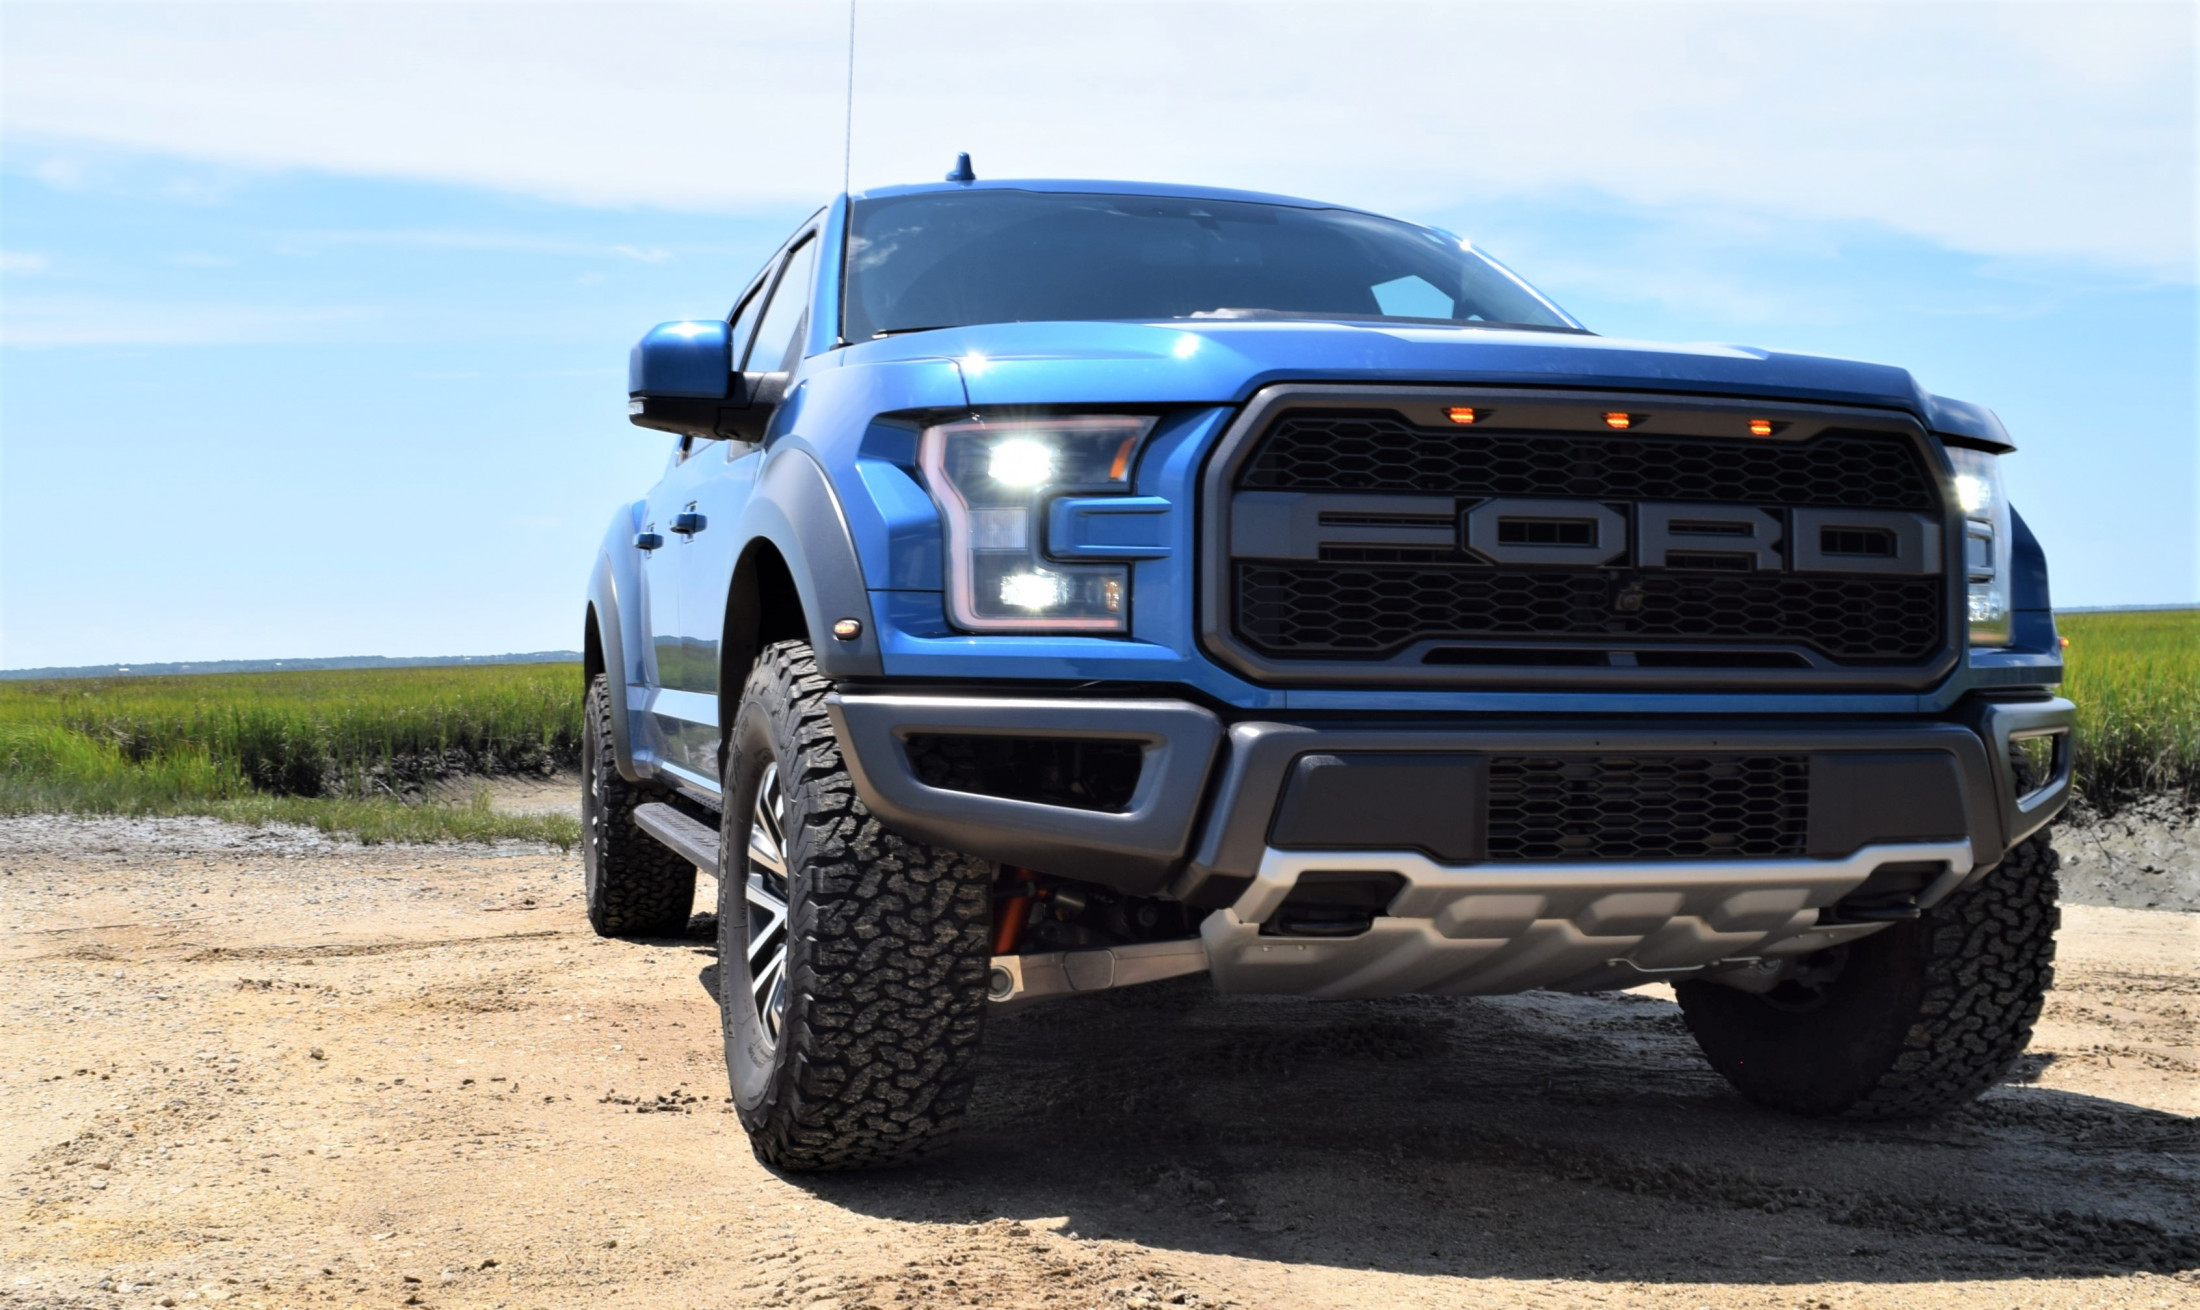 2019 Ford F 150 Raptor On And Off Road Test Review Video Best Of 2019 Awards Car Revs Daily Com